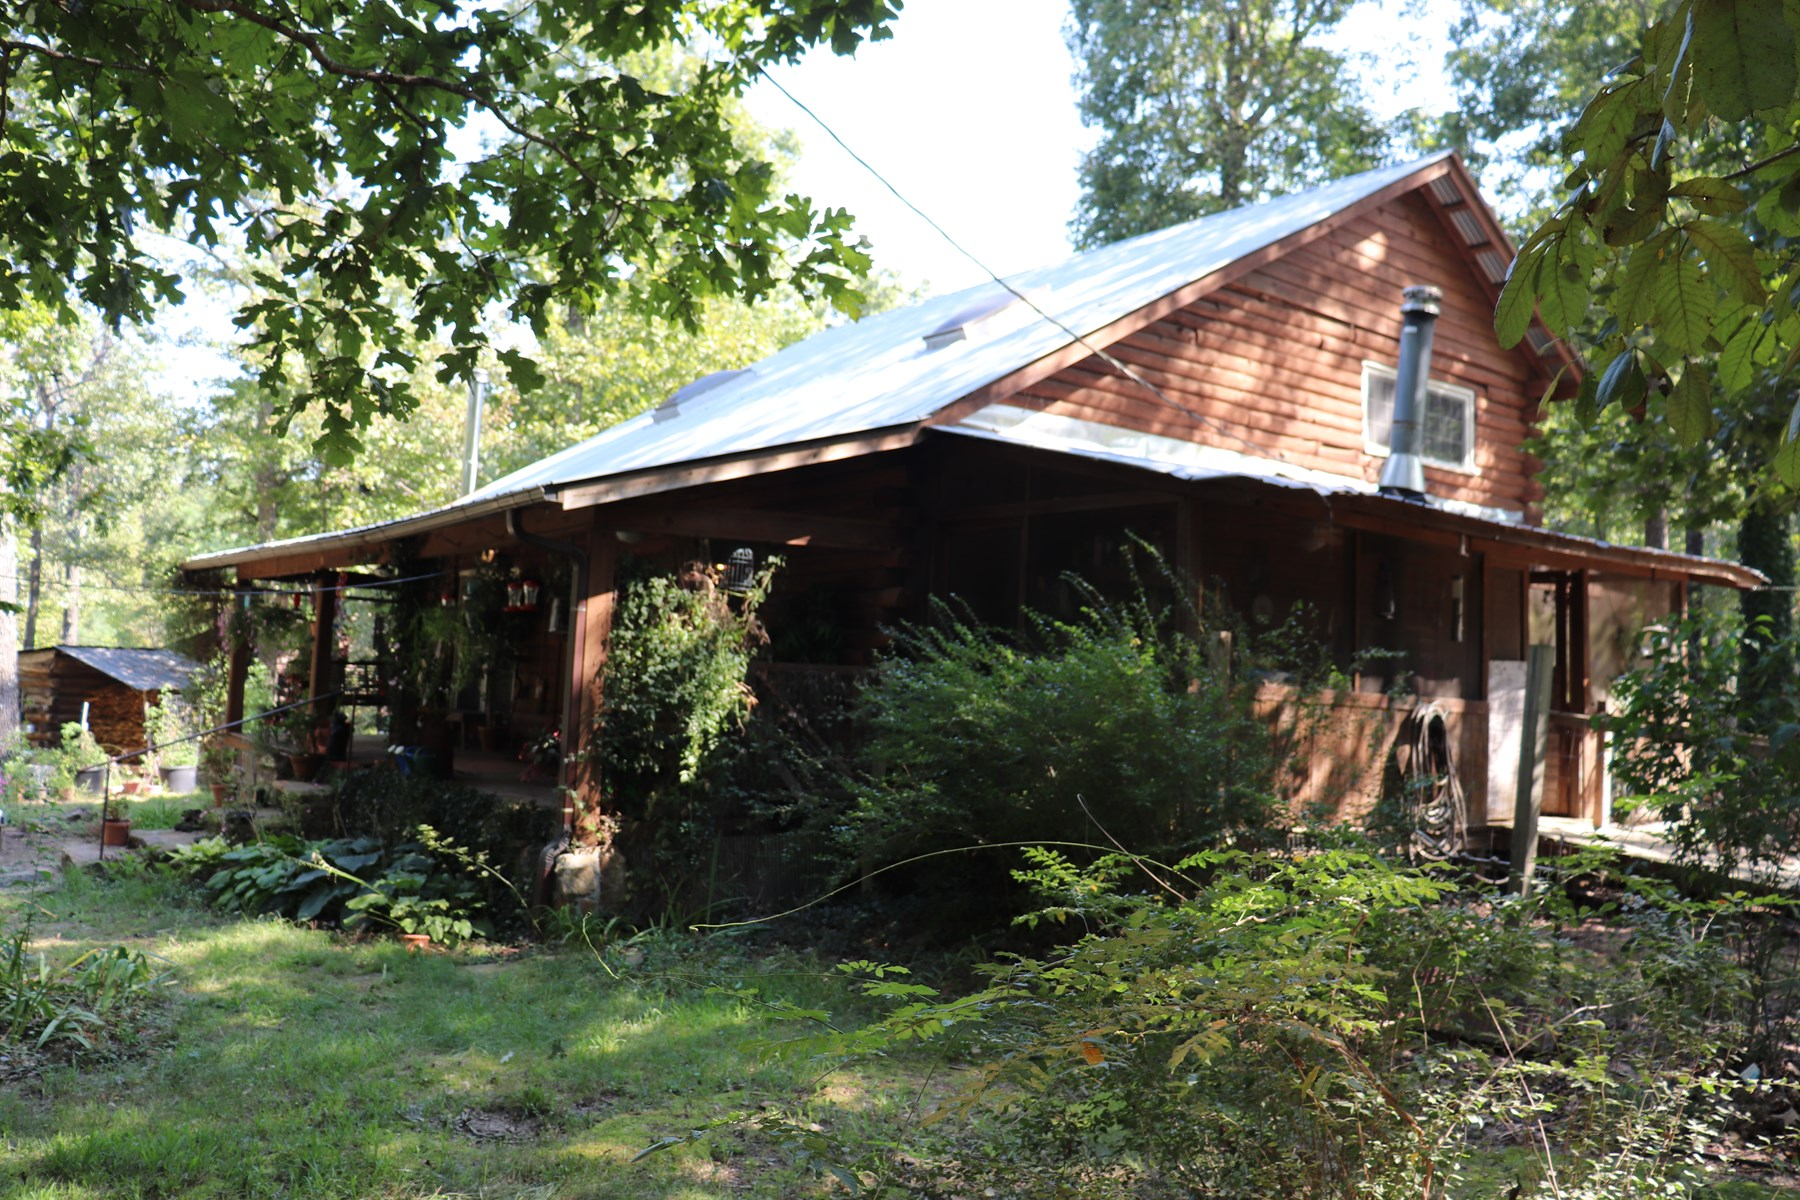 4 Bed/2 Bath Log Cabin on 7 Acres M/L